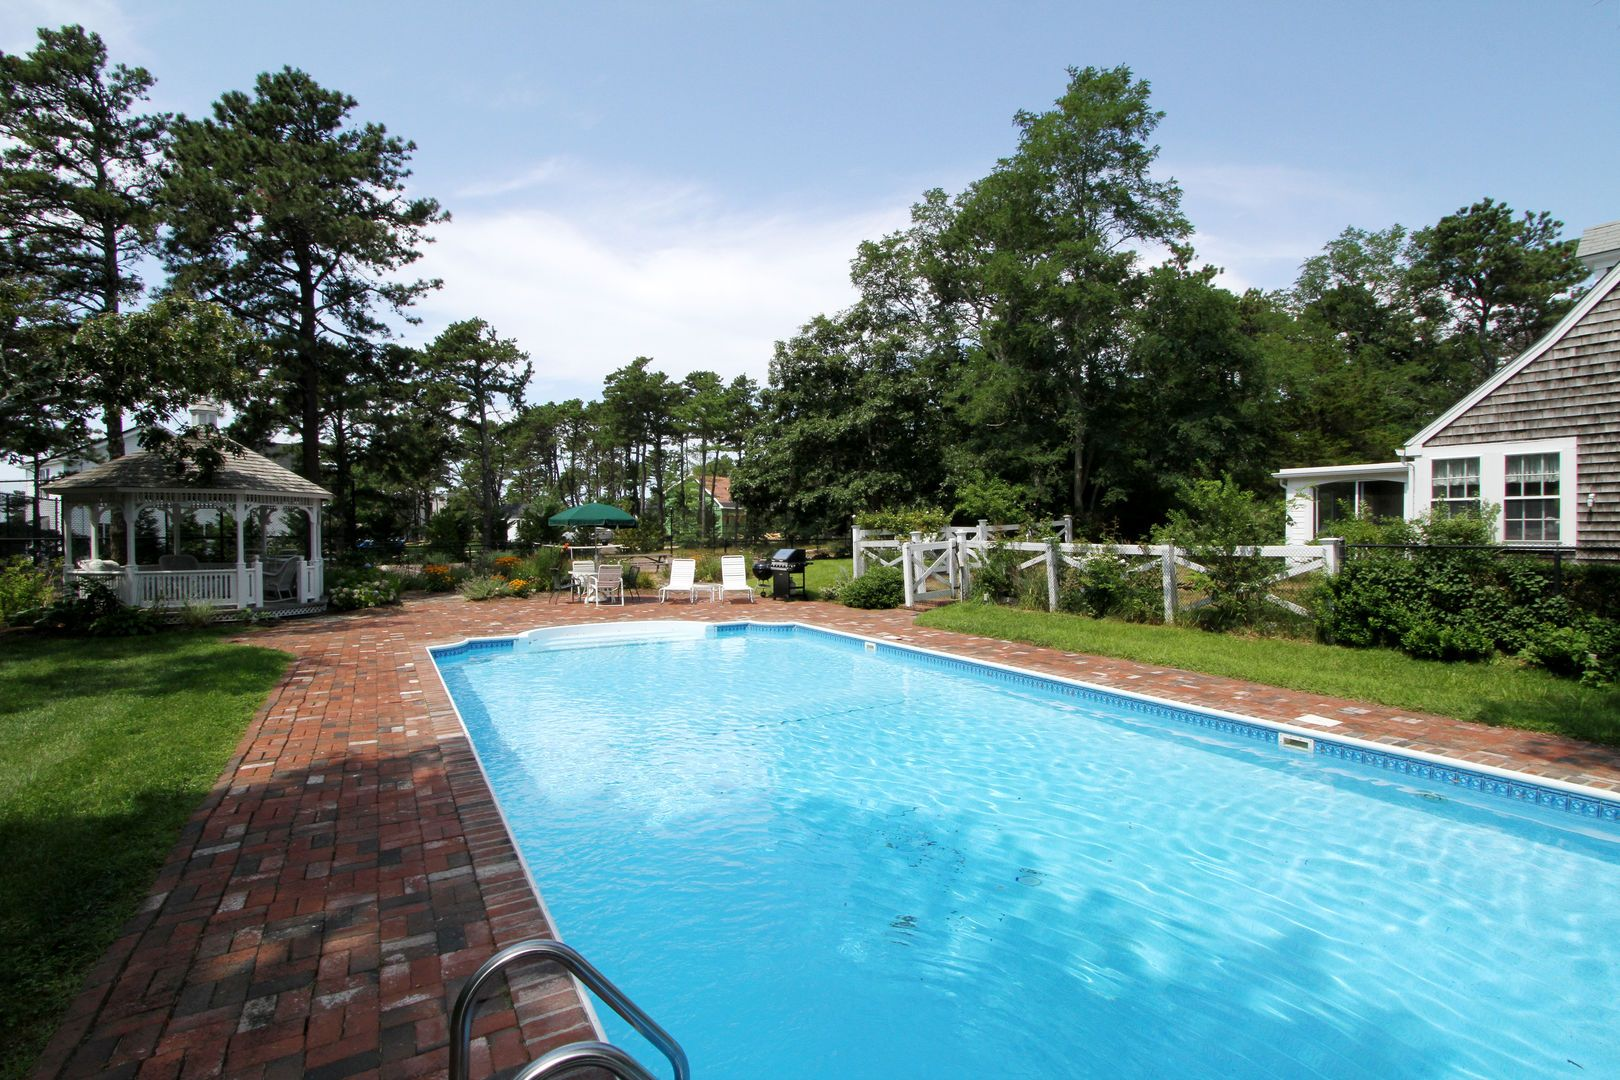 Dive in! Enjoy an amazing getaway at this Cape Cod